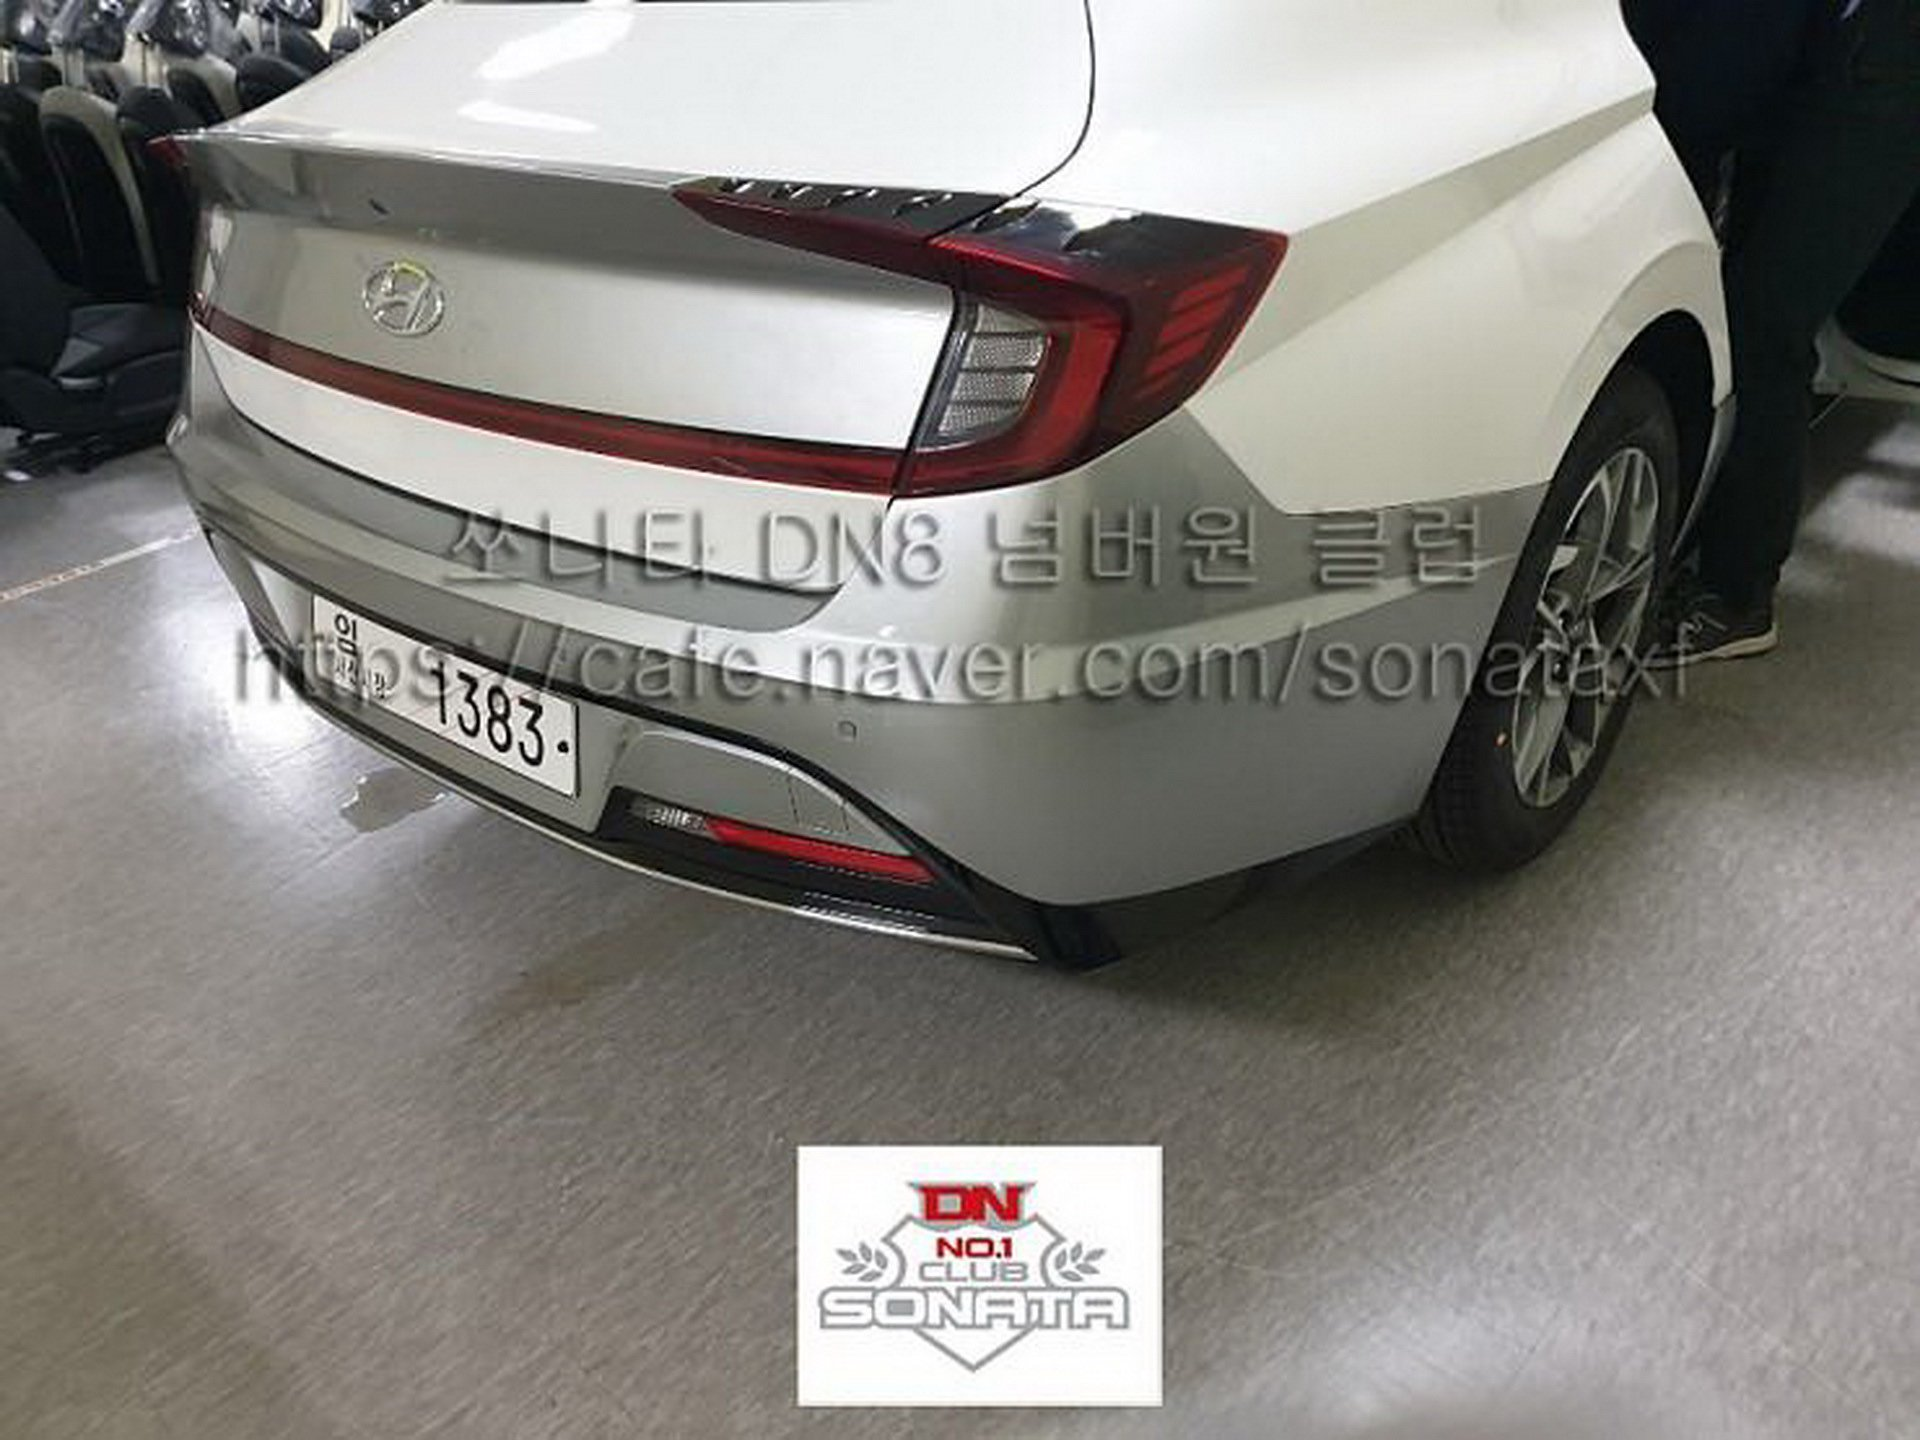 2020 Hyundai Sonata Features Honda Civic Influenced